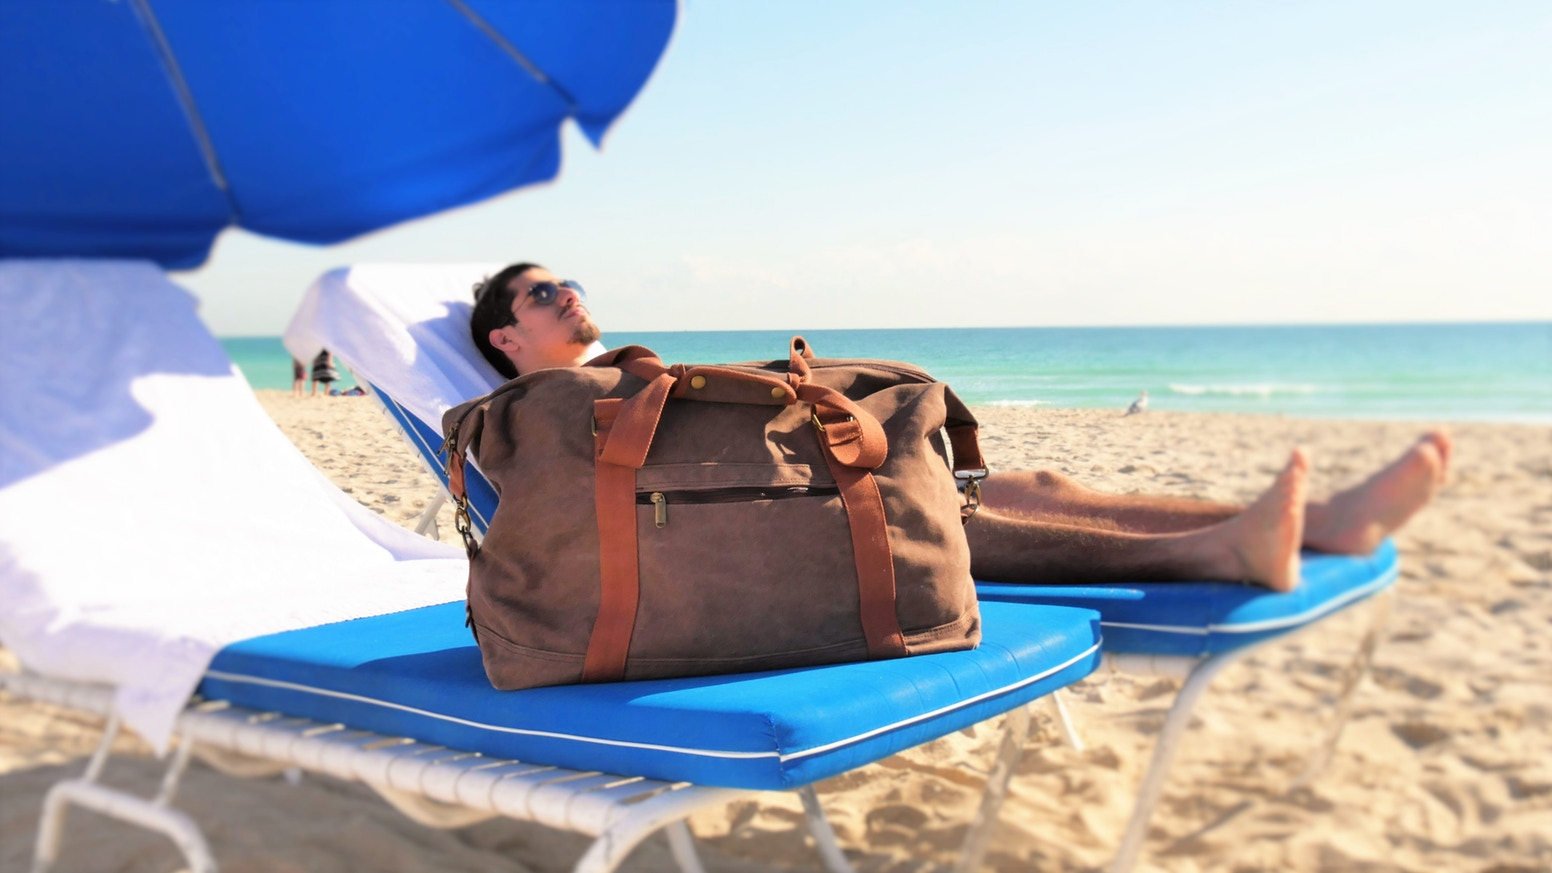 Innovative design with a Sand-Discharge Mesh, Beach Towel Holder, Cooler pocket, Built-In USB ports, 10 Utility pockets and much more.